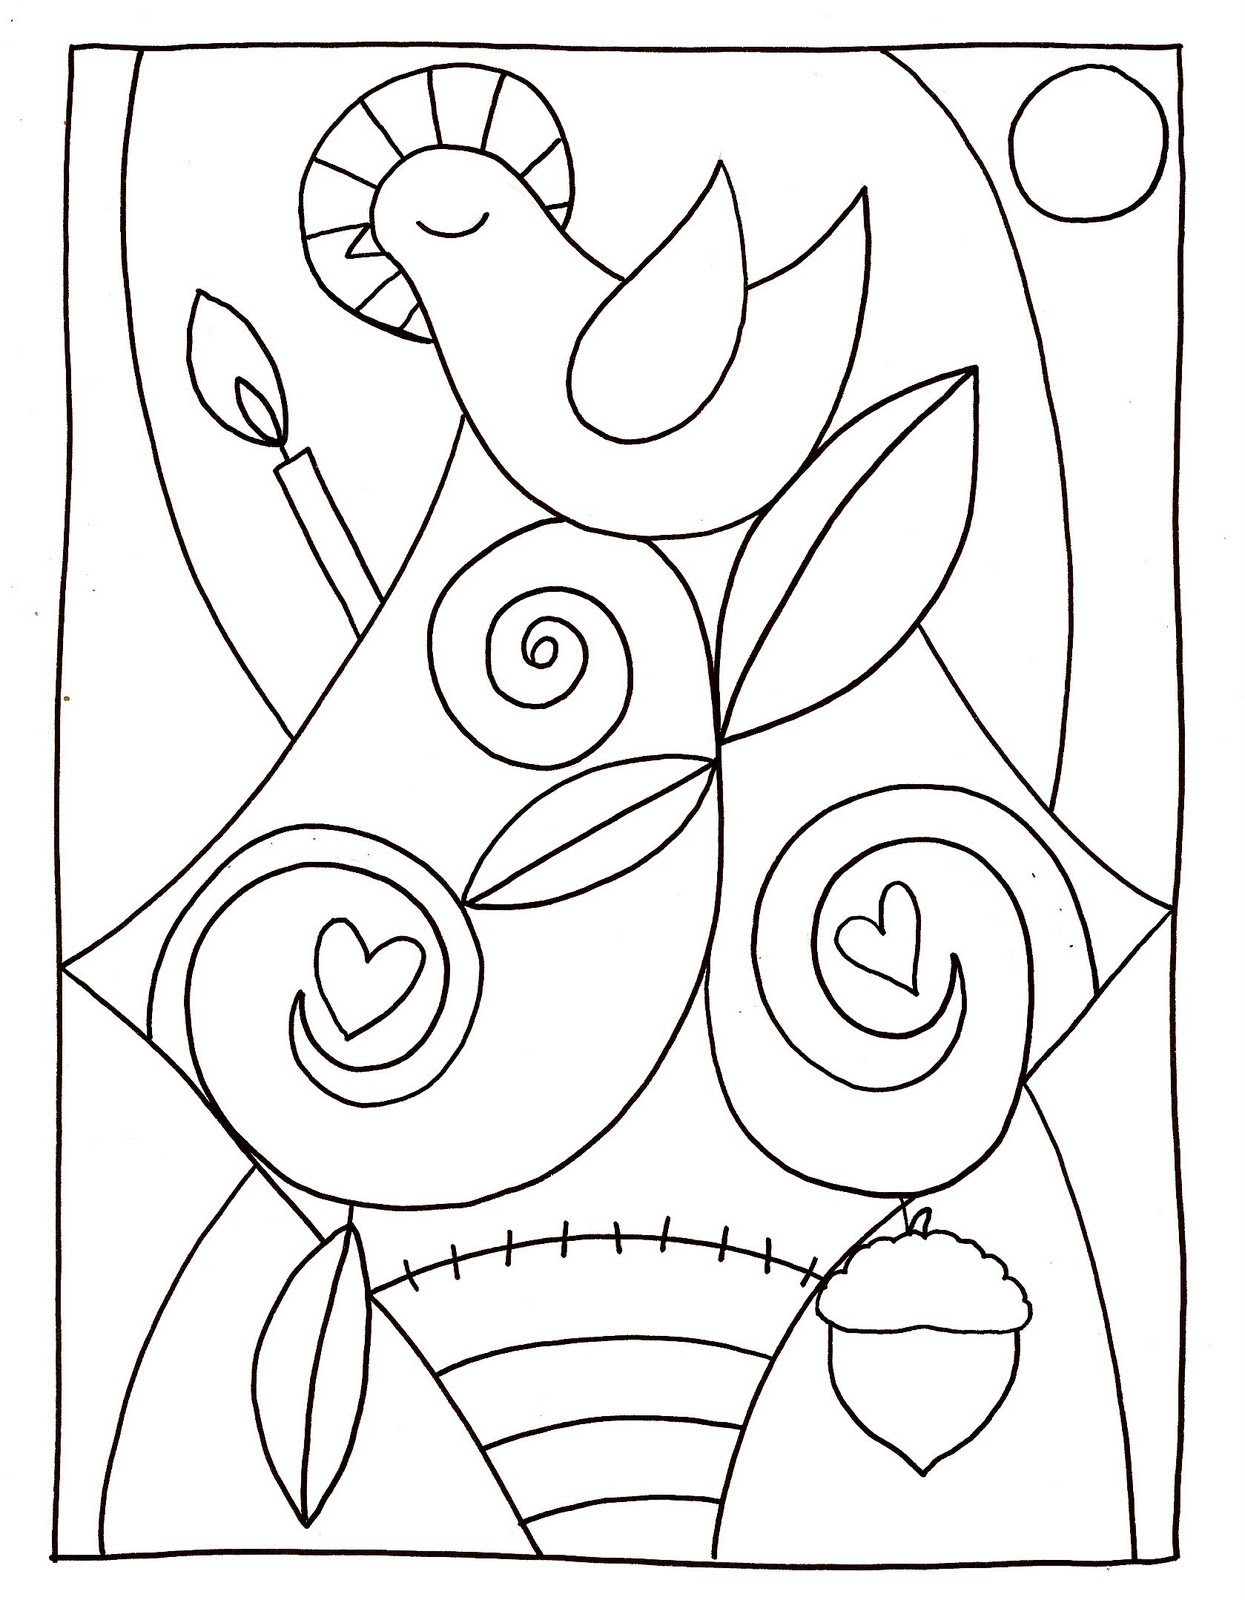 love god coloring pages - photo#34